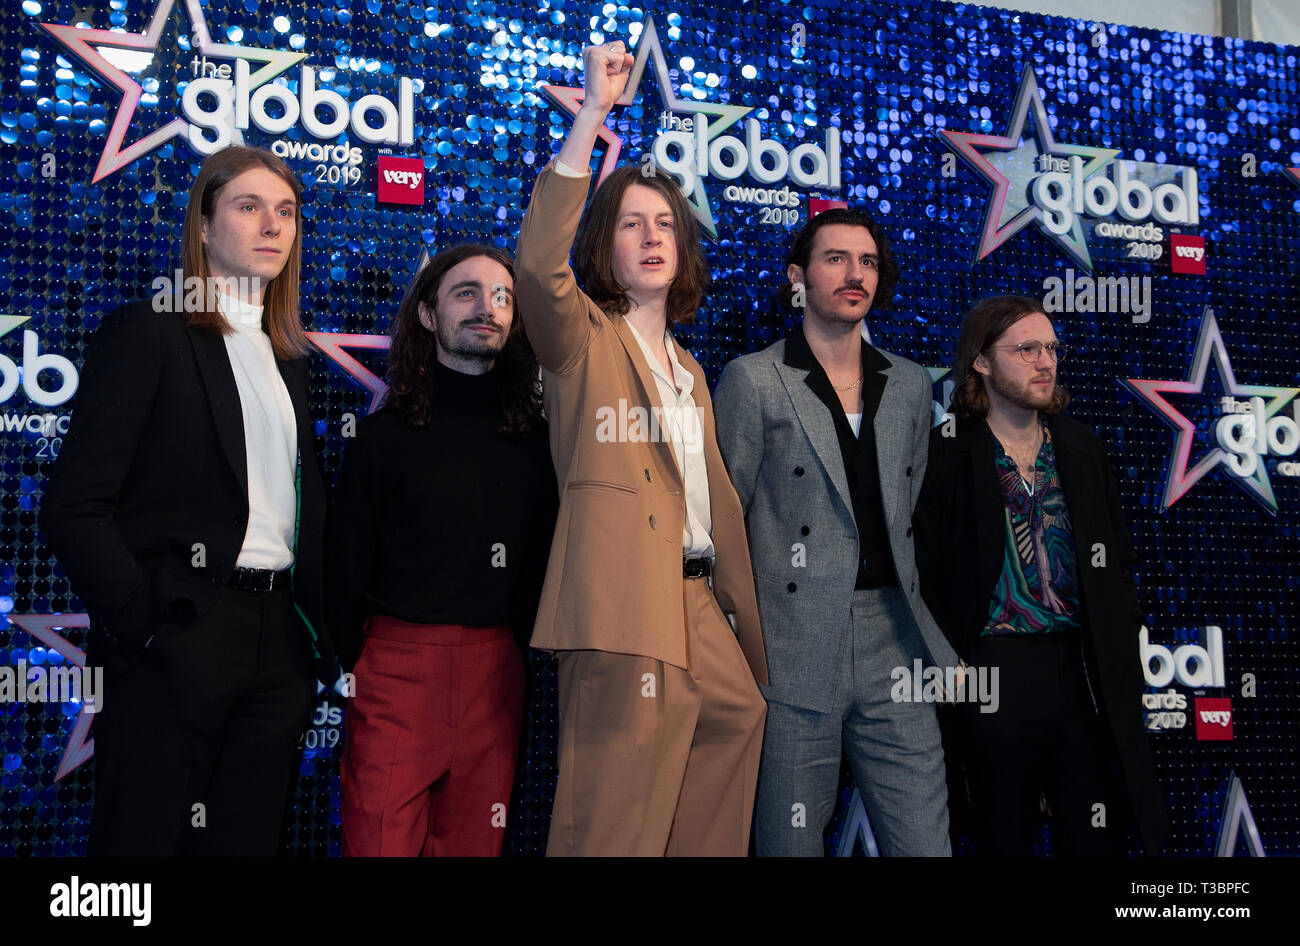 The Global Awards Blue Carpet Arrivals at Eventim Apollo, Hammersmith in London.  Featuring: Tom Ogden, Charlie Salt, Joe Donovan, Josh Dewhurst, Myles Kellock, The Blossoms Where: London, United Kingdom When: 07 Mar 2019 Credit: WENN.com - Stock Image